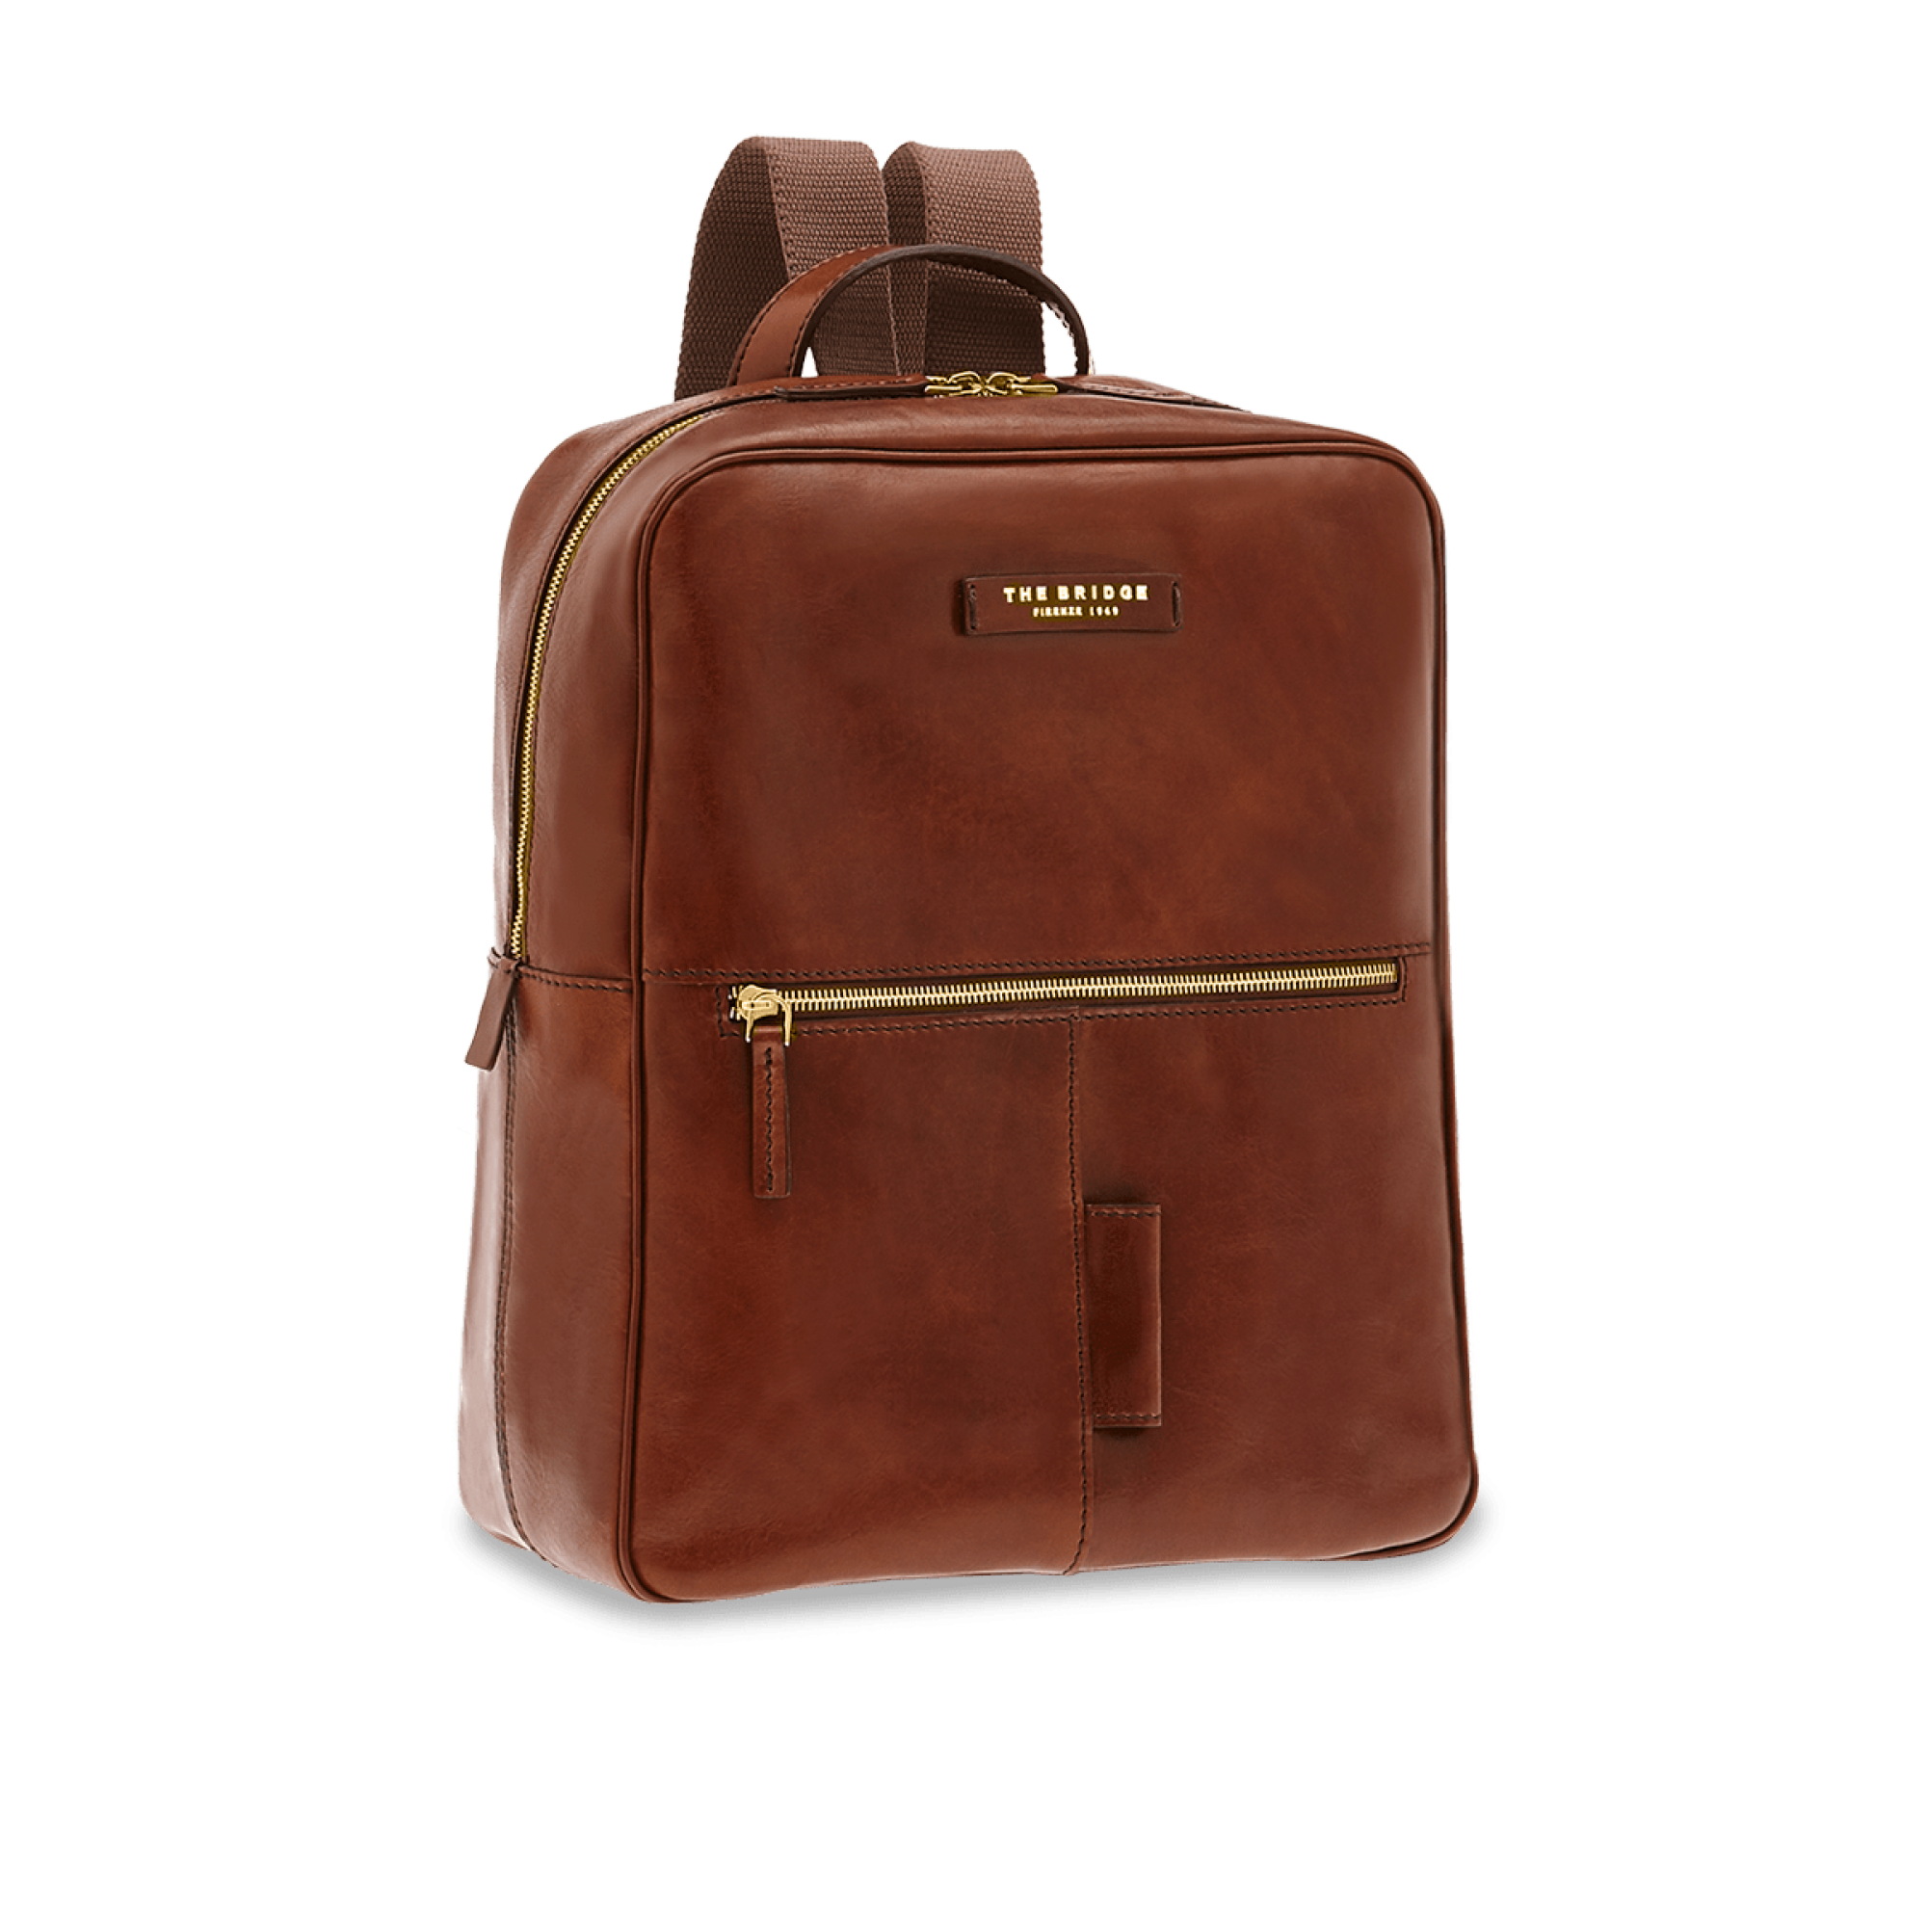 55f61504e0 ZAINO THE BRIDGE PASSPARTOUT UOMO BACKPACK 06423501 14 MARRONE ...